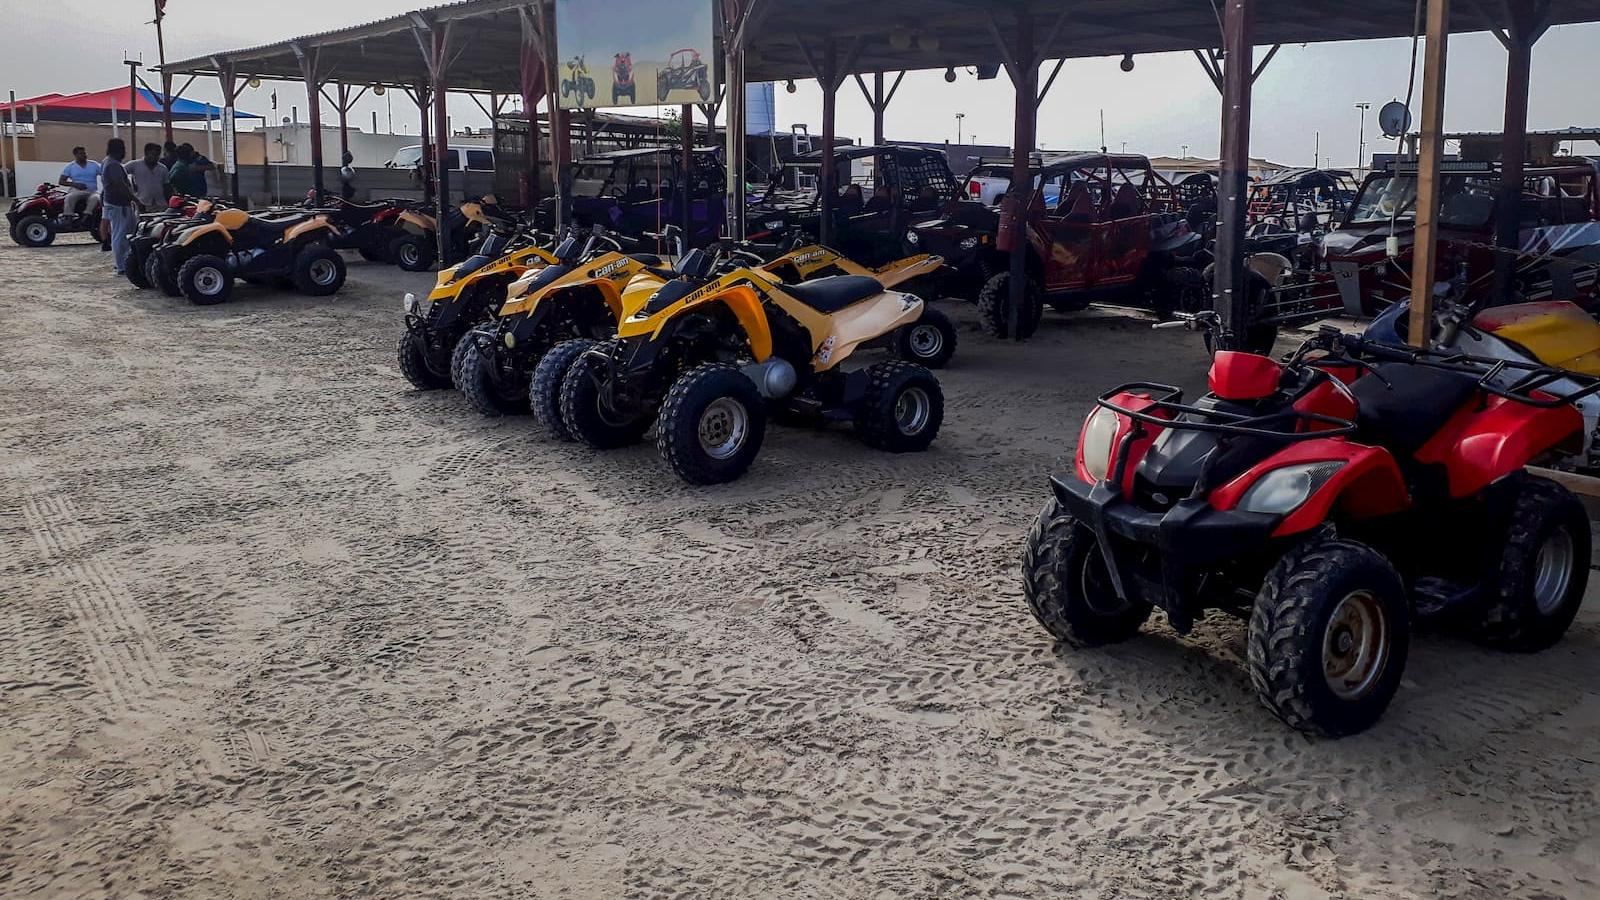 HMC shares lessons learned from patients injured in quad bike accidents